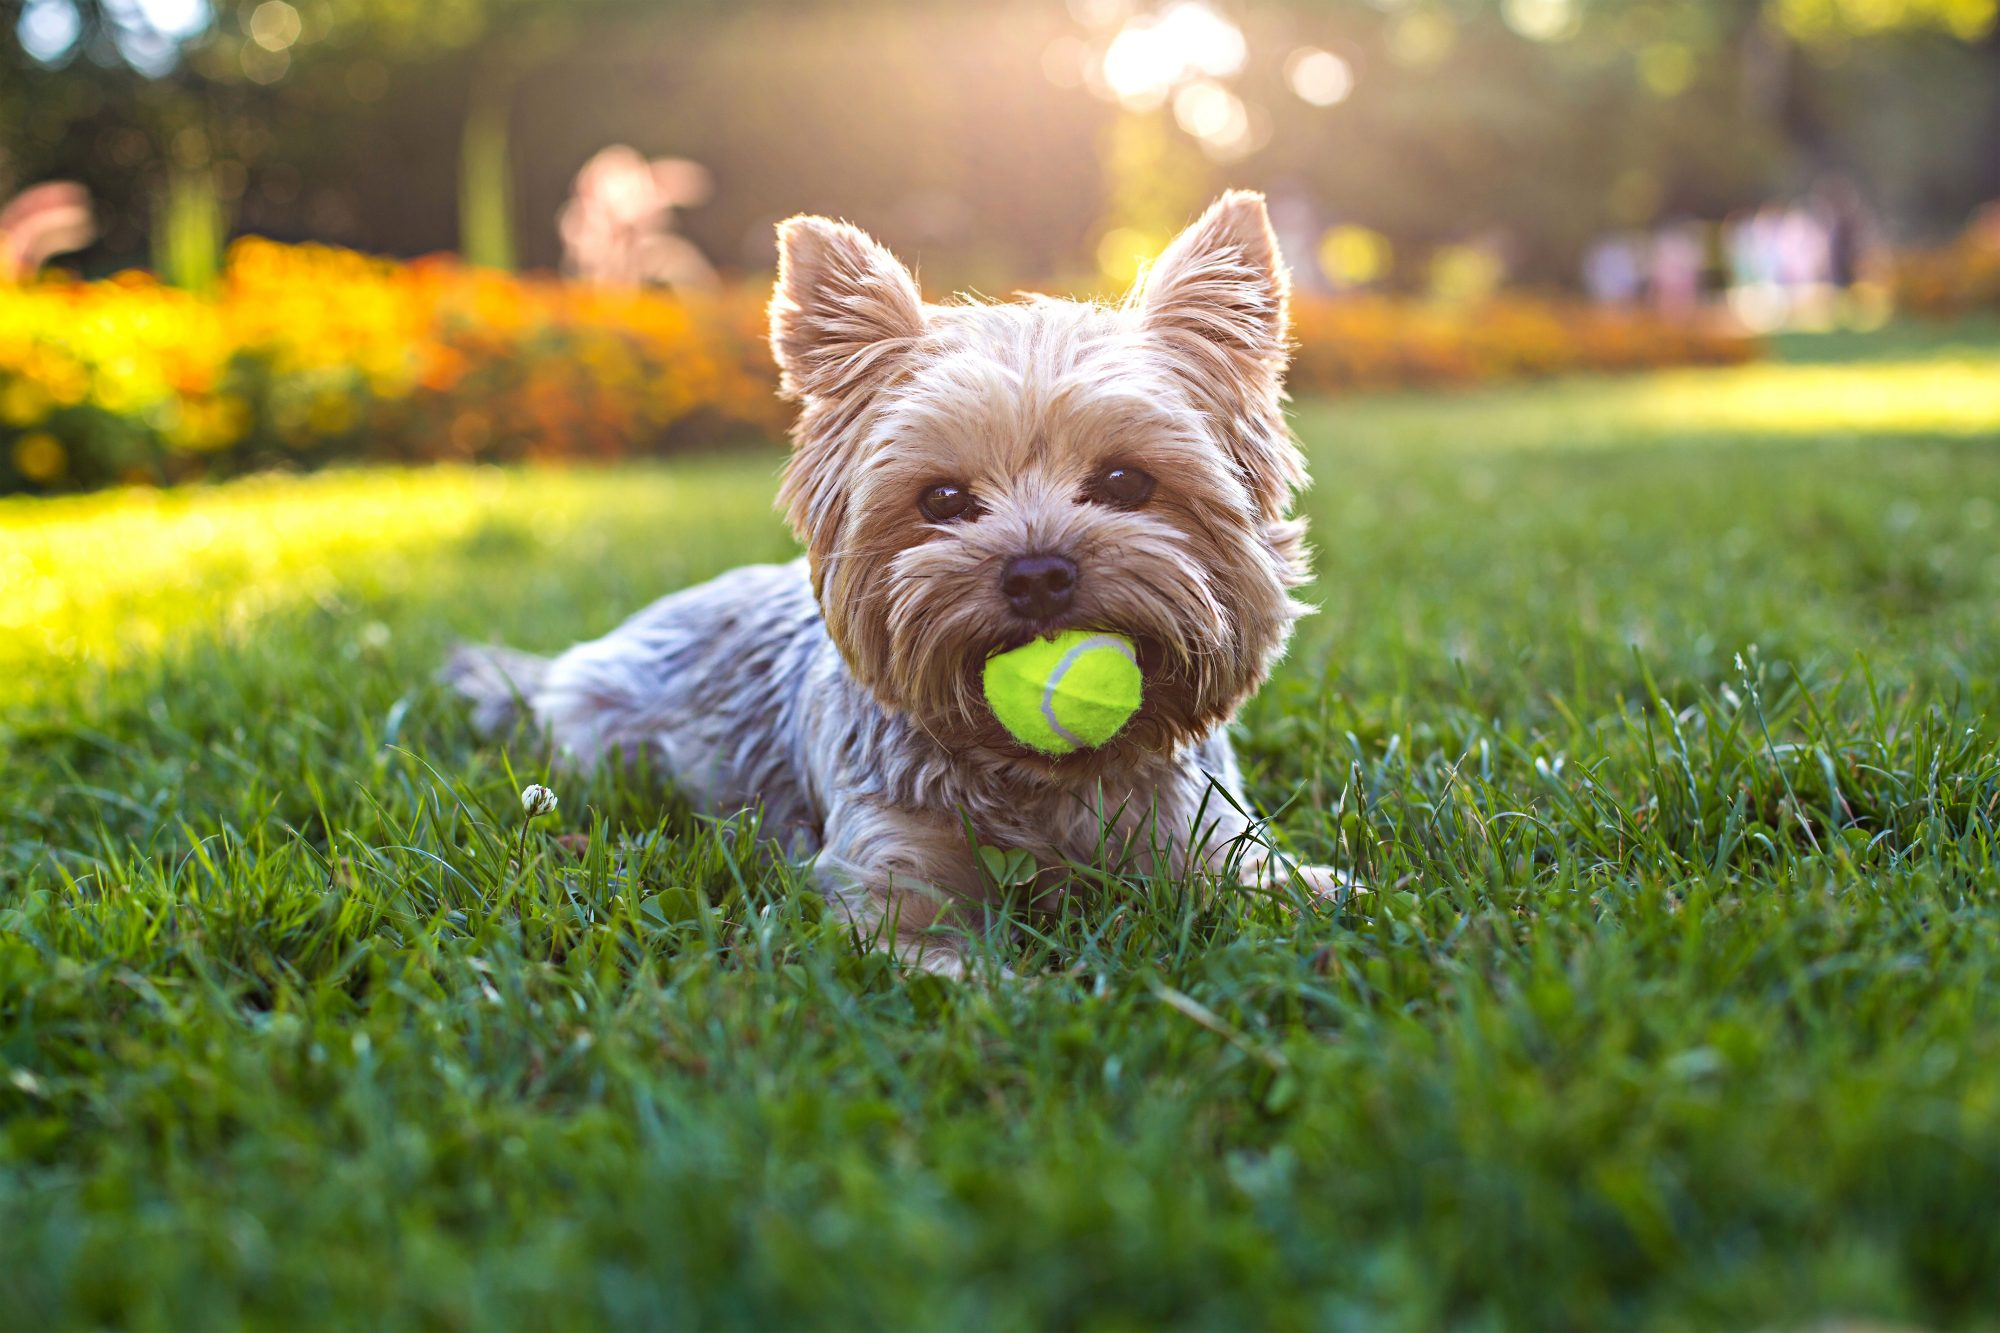 Yorkshire Terrier Laying in Grass with Tennis Ball in Mouth